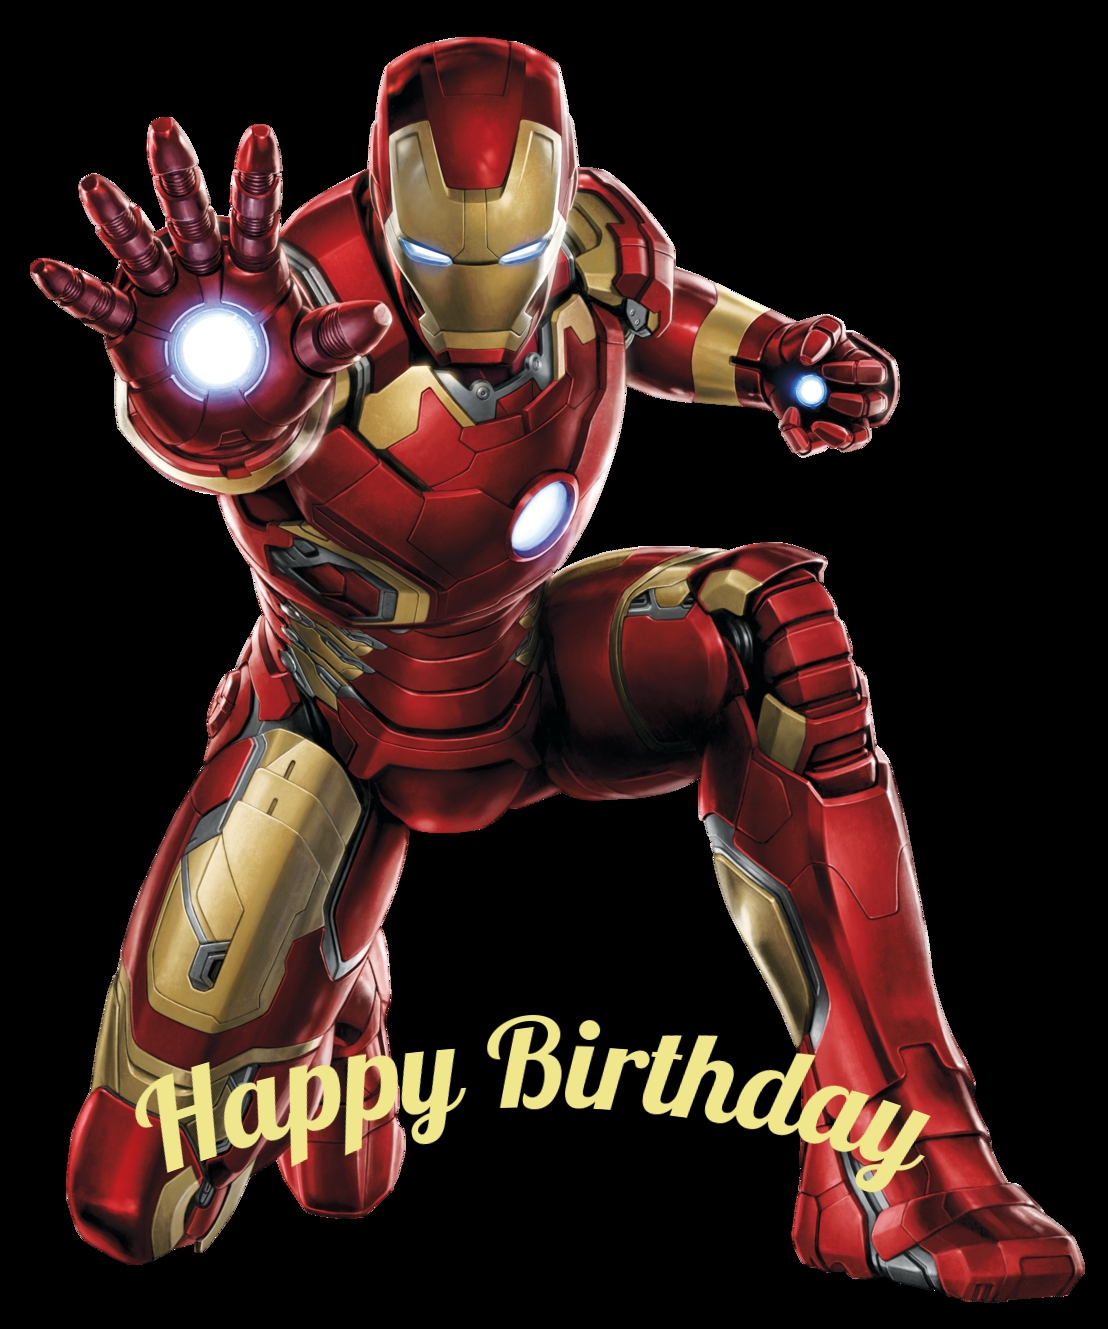 Iron-Manbd birthday cards